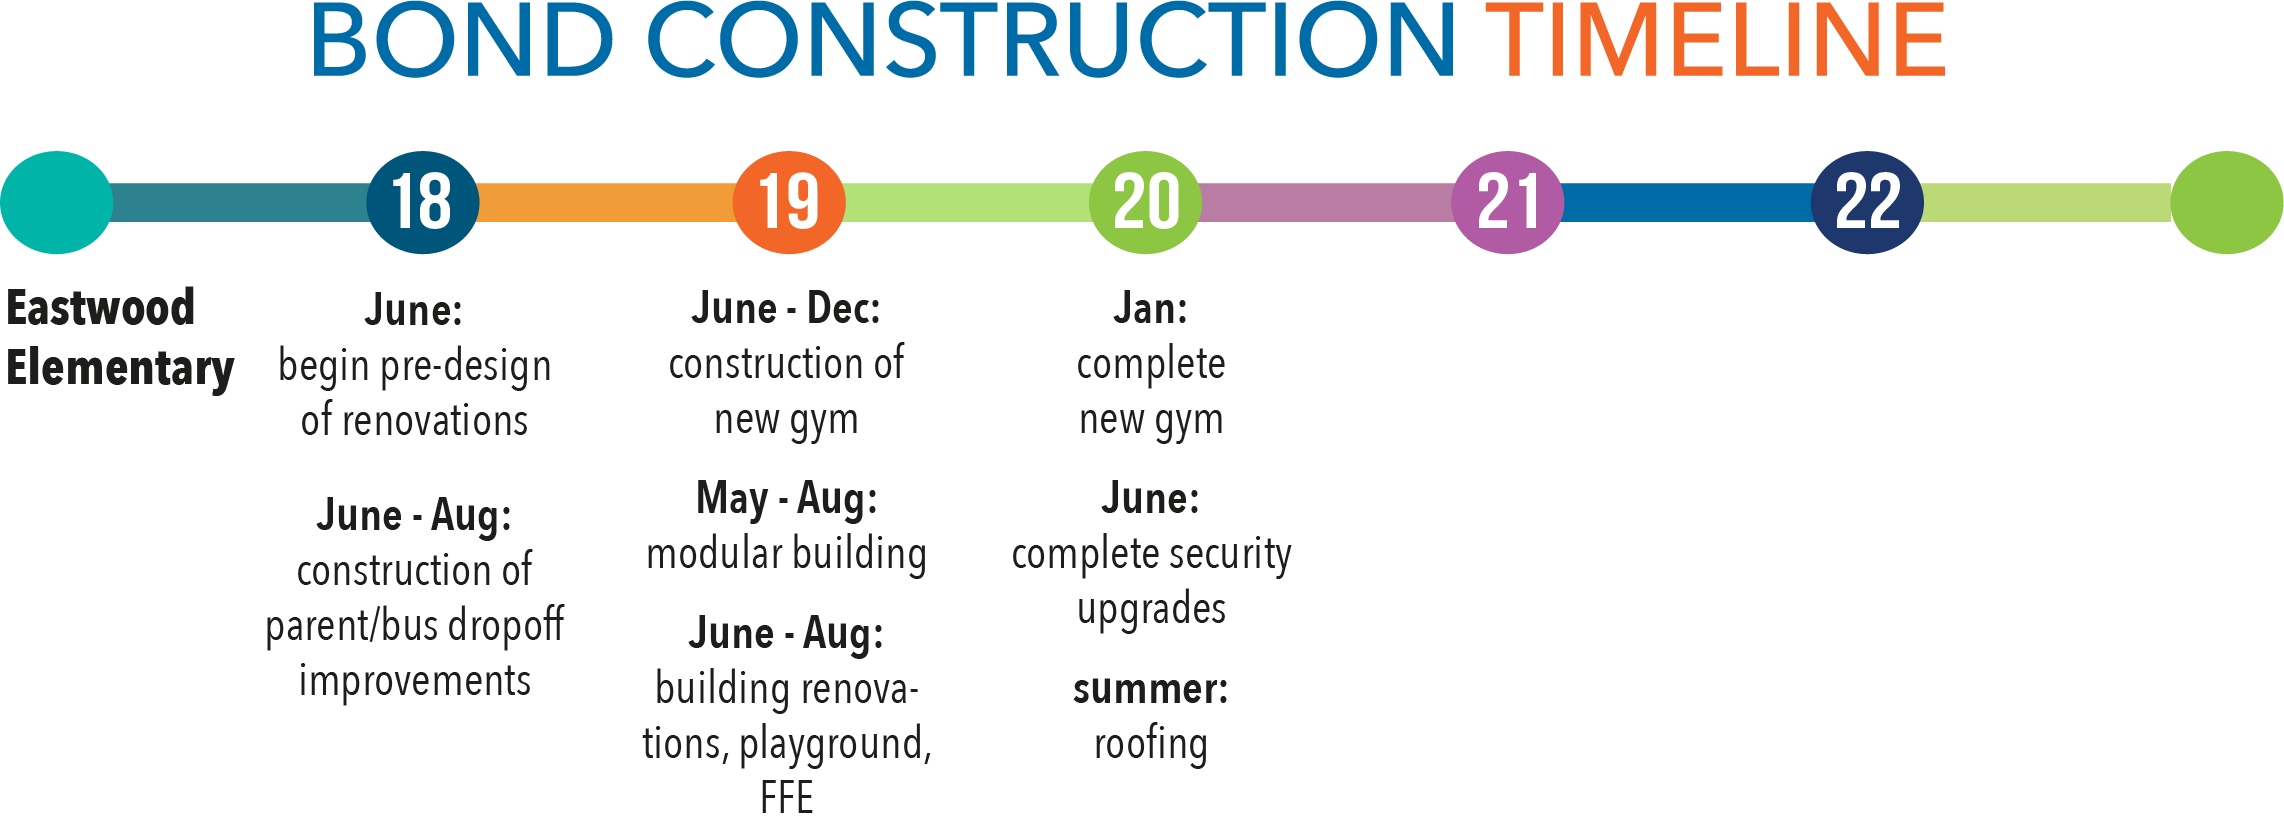 construction timeline for Eastwood